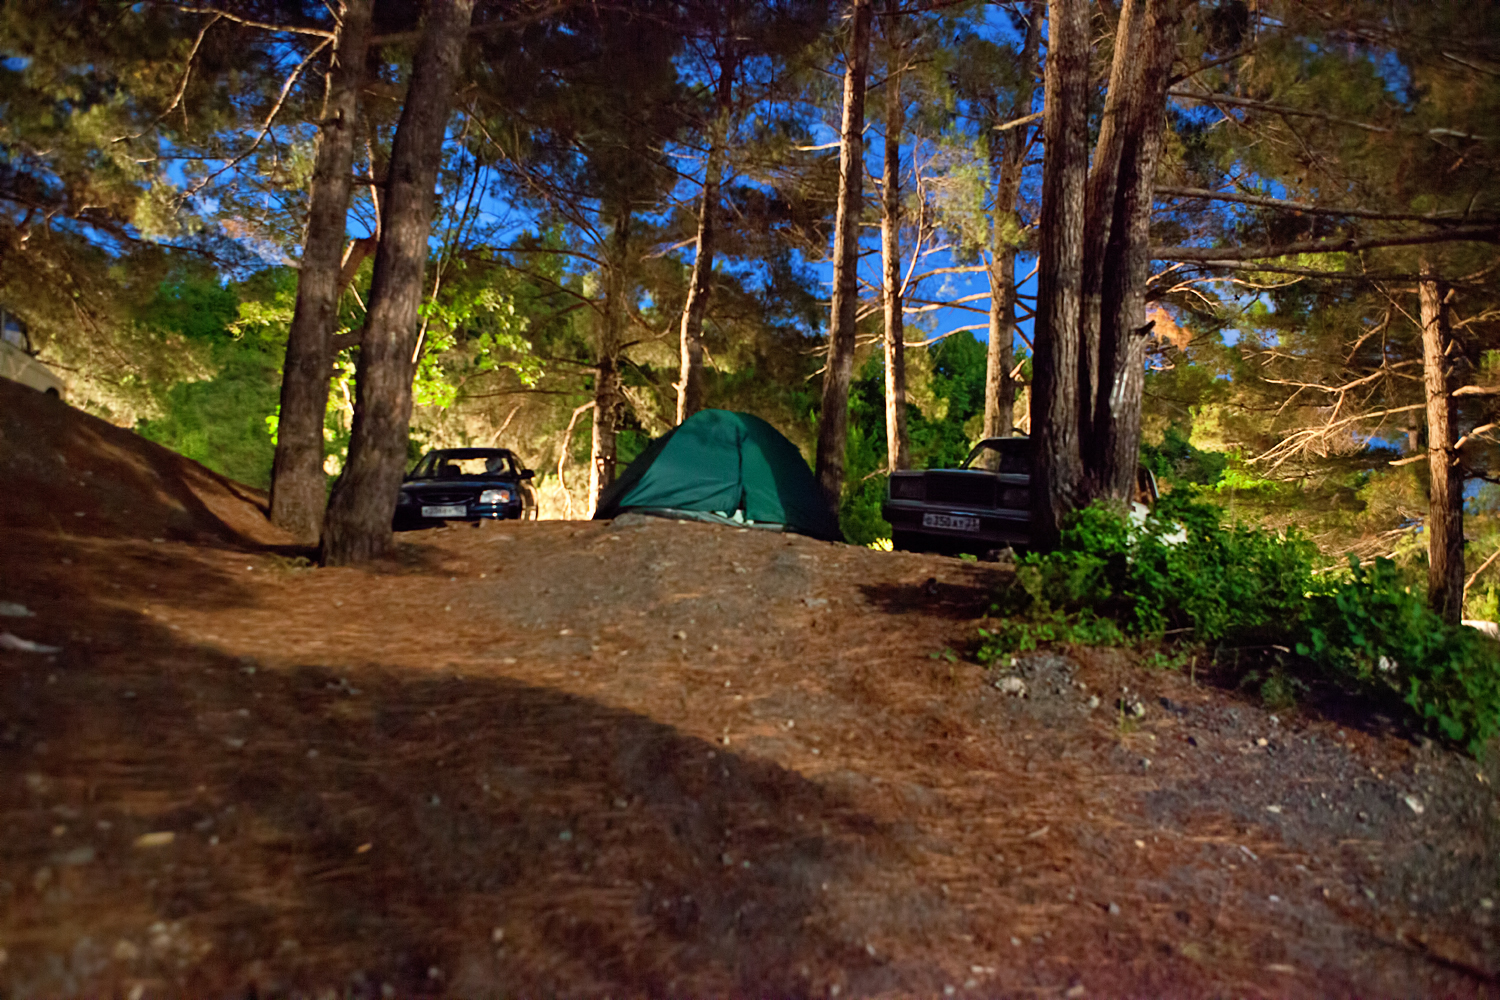 camping site at night, Auto, Recreation, Vacation, Trekking, HQ Photo